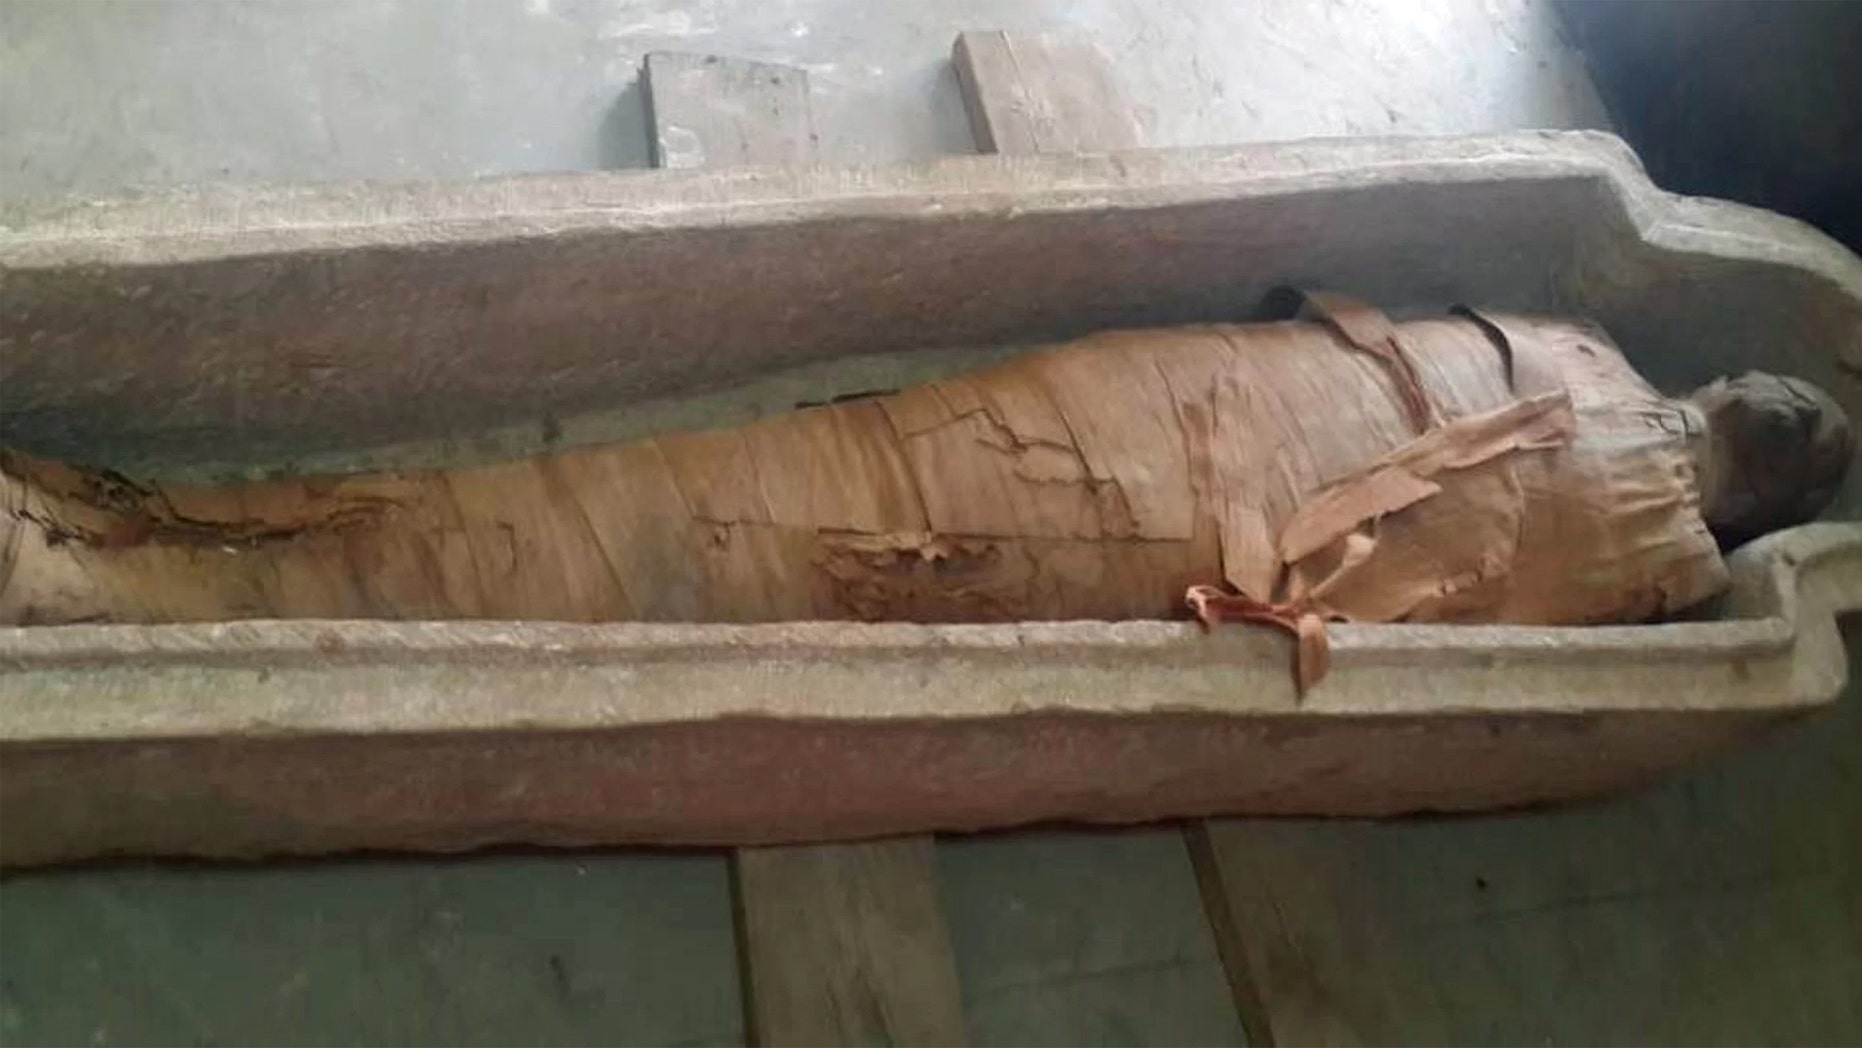 This well-preserved mummy, wrapped in linen bandages, was found inside a sandstone sarcophagus in a 2,500-year-old tomb at Aswan, in southern Egypt. The identity of the mummy is unclear. Credit: Photo courtesy of the Egyptian Ministry of Antiquities